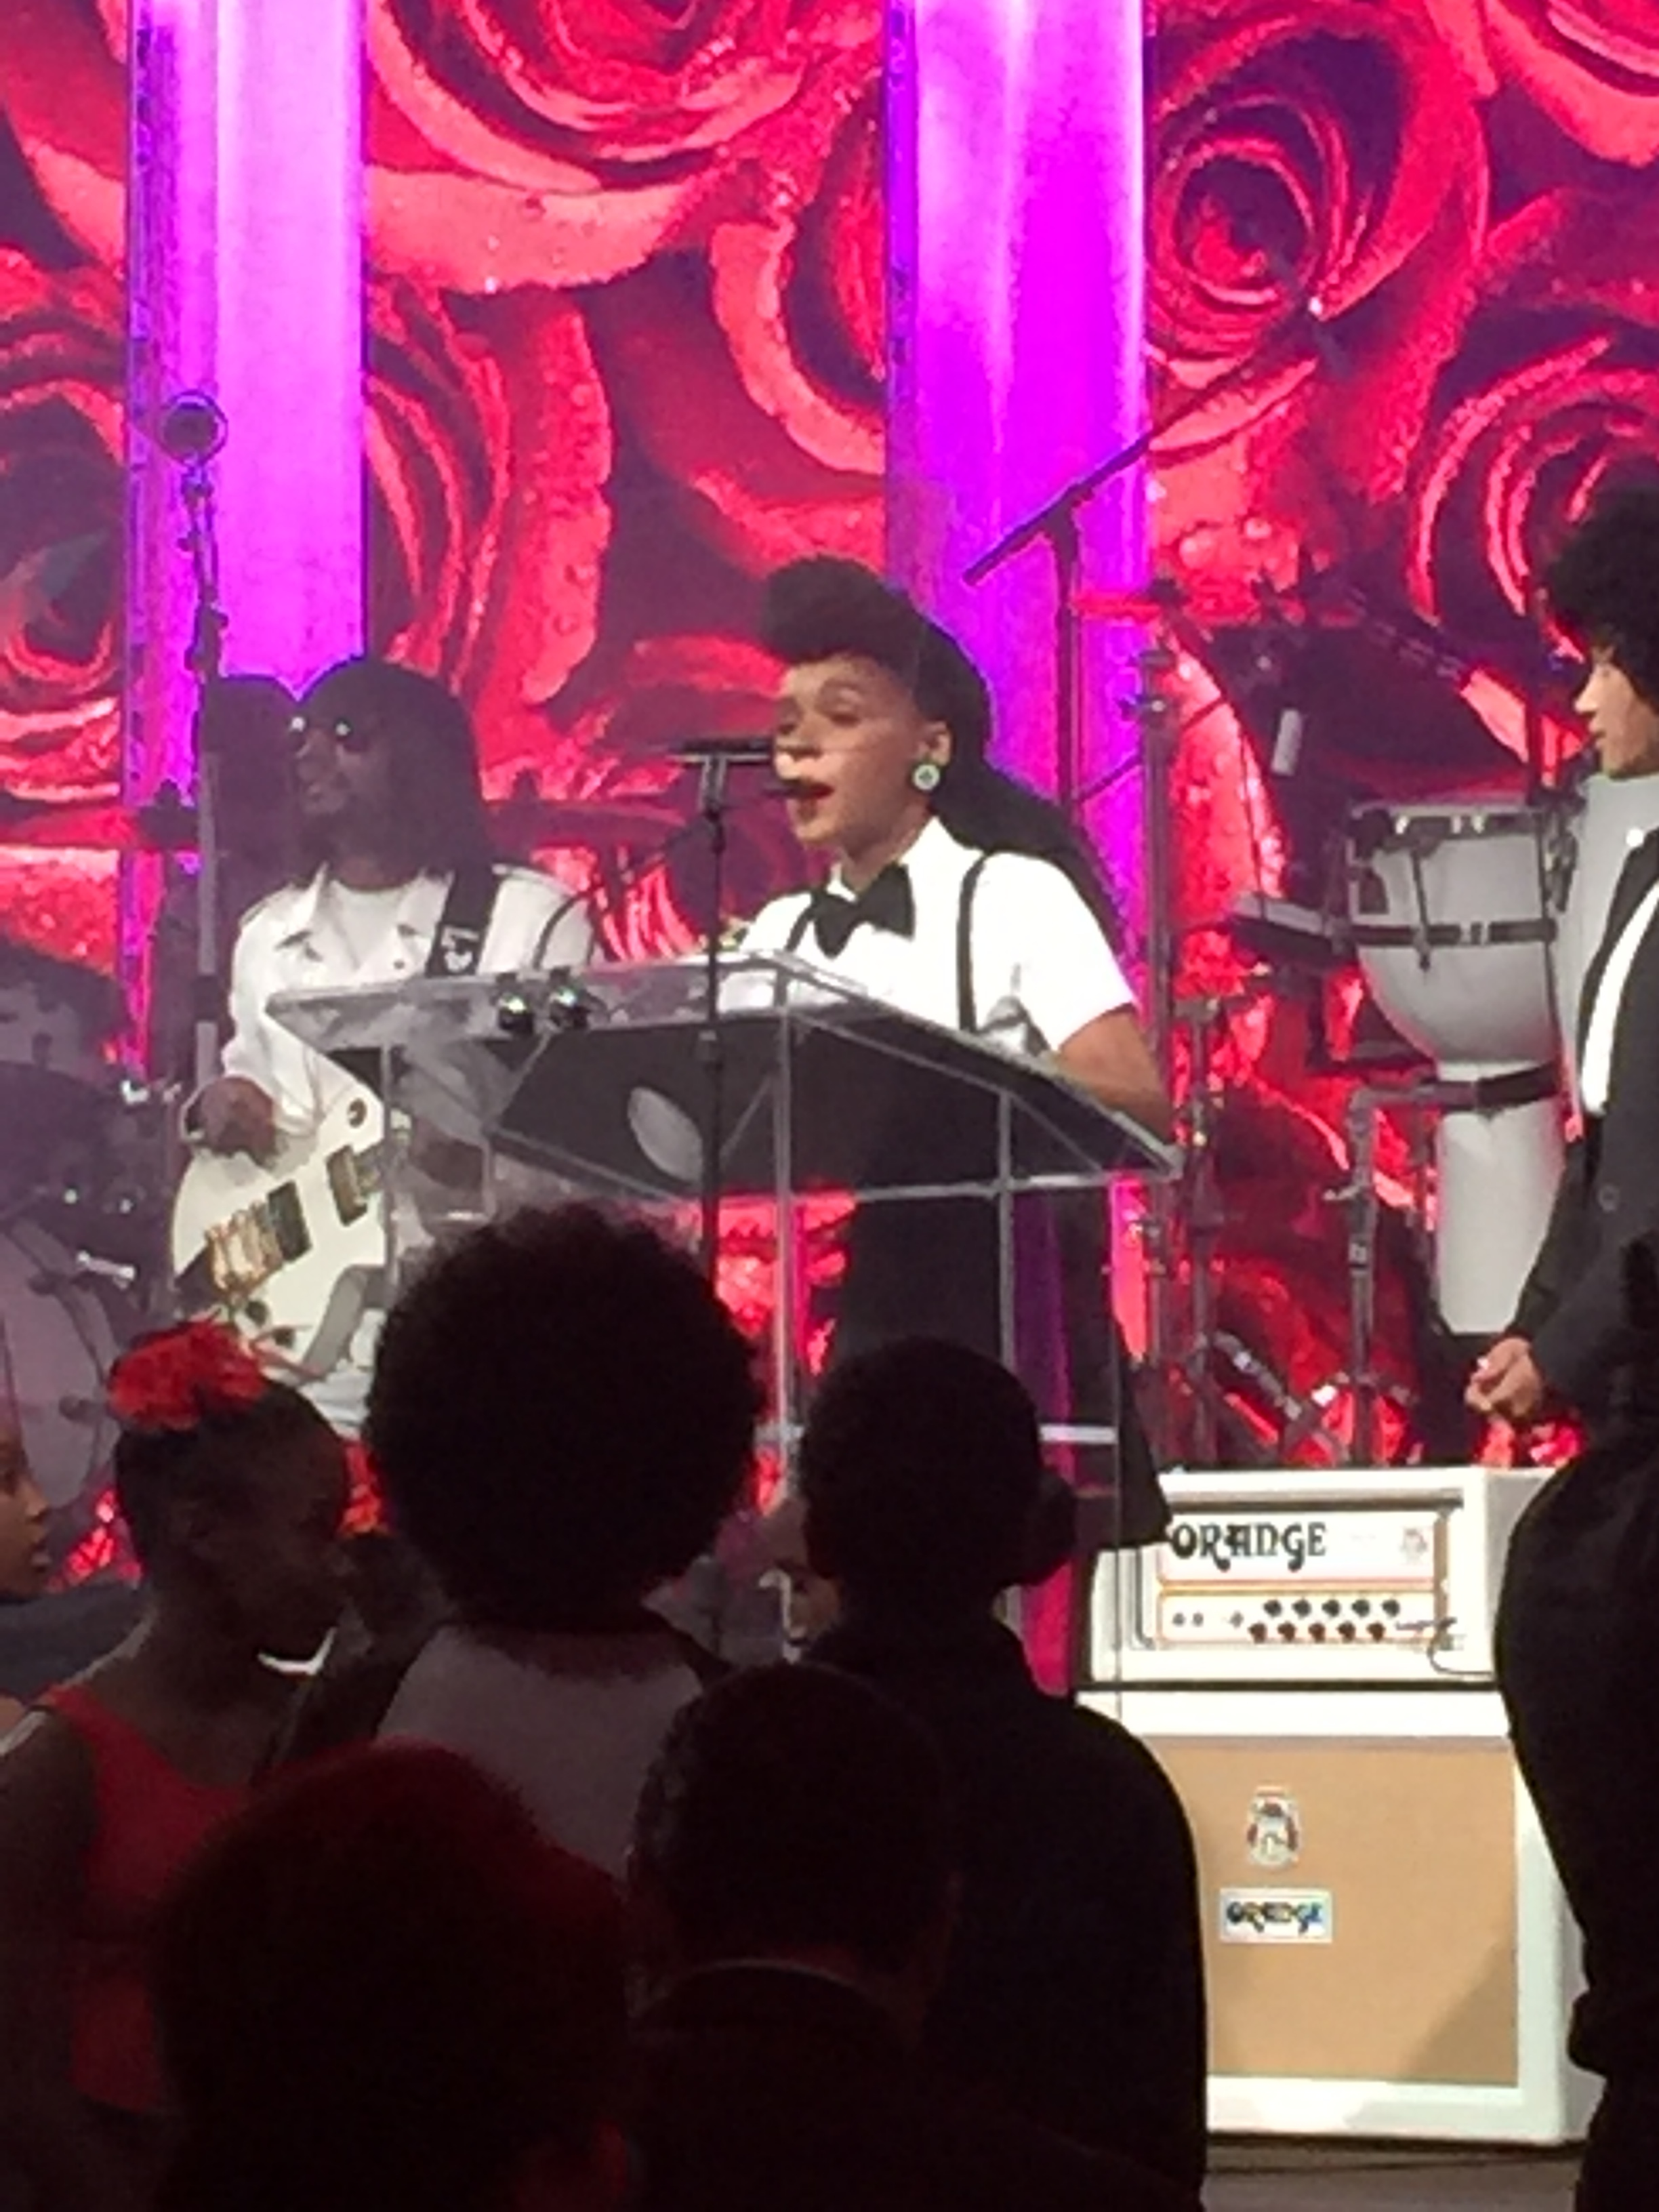 Janelle Monáe  was an event honoree and treated us to a performance. She opened with a Prince tribute,  Let's Go Crazy .